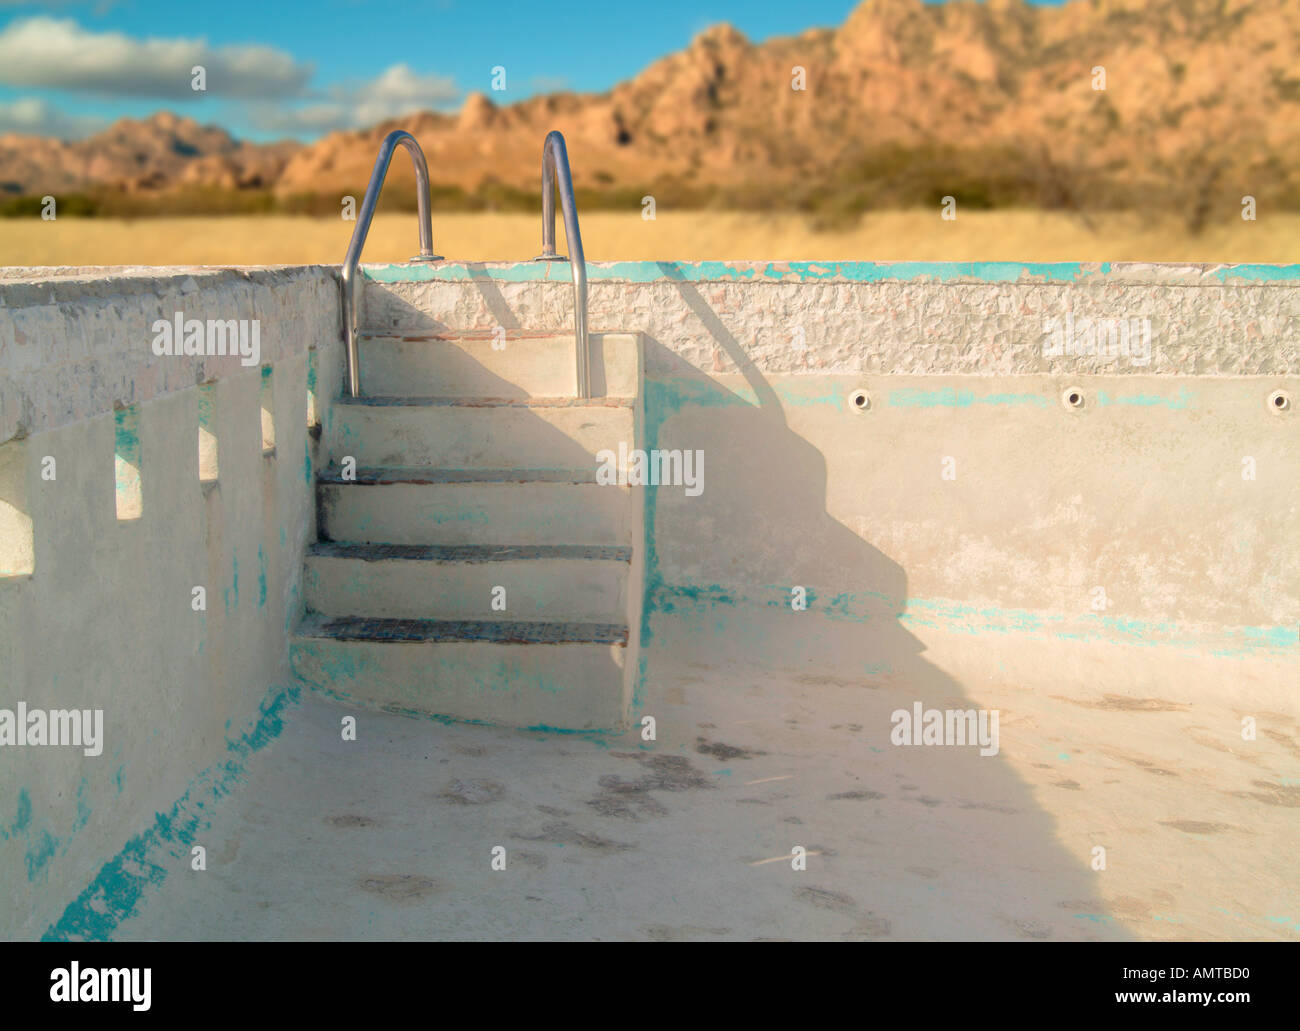 an empty concrete swimming pool with steps leading down into the ...